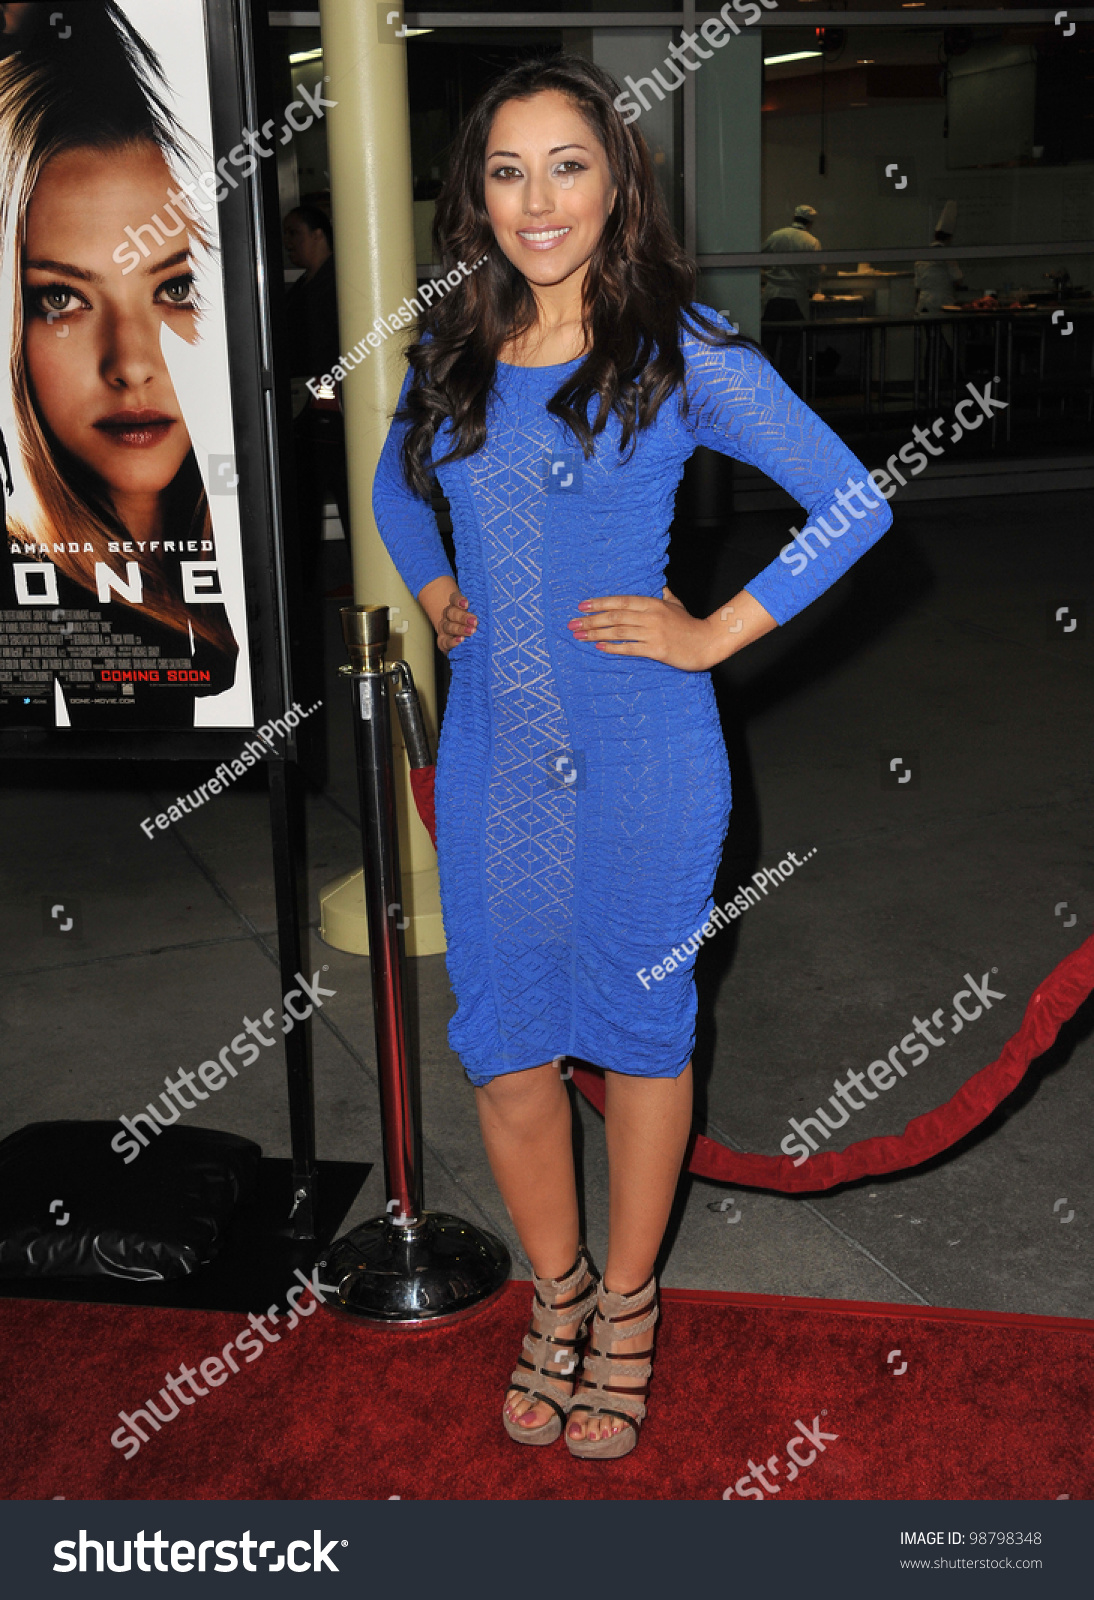 """Hazel D'Jan at the Los Angeles premiere of """"Gone"""" at the Arclight"""